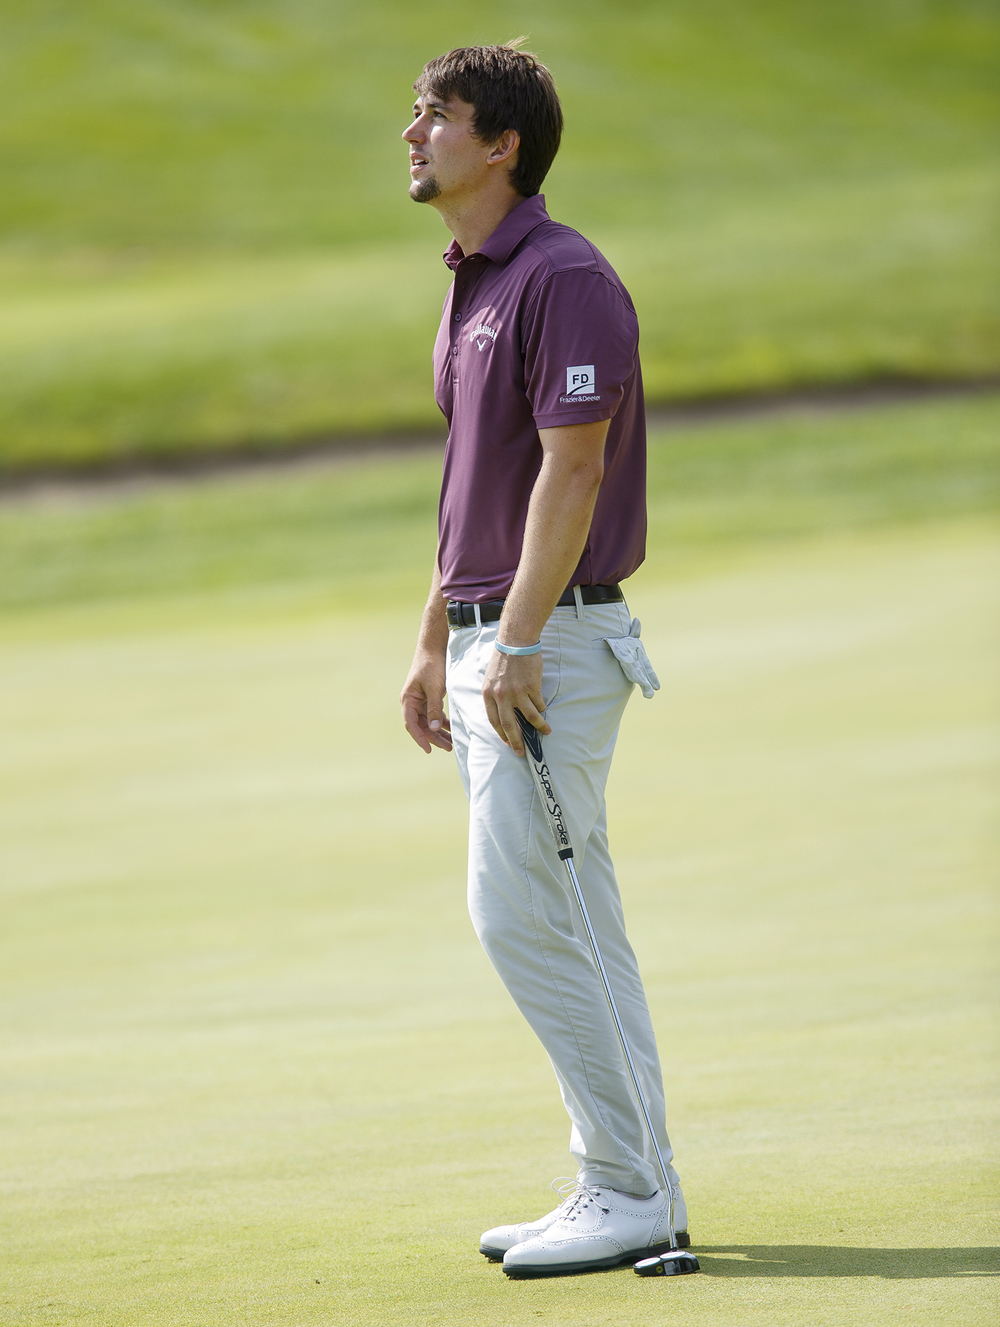 Ollie Schniederjans looks up in frustration after missing a birdie putt on the ninth hole during the final round of the Web.com Tour Lincoln Land Charity Championship at Panther Creek Sunday, July 17, 2016. Ted Schurter/The State Journal-Register